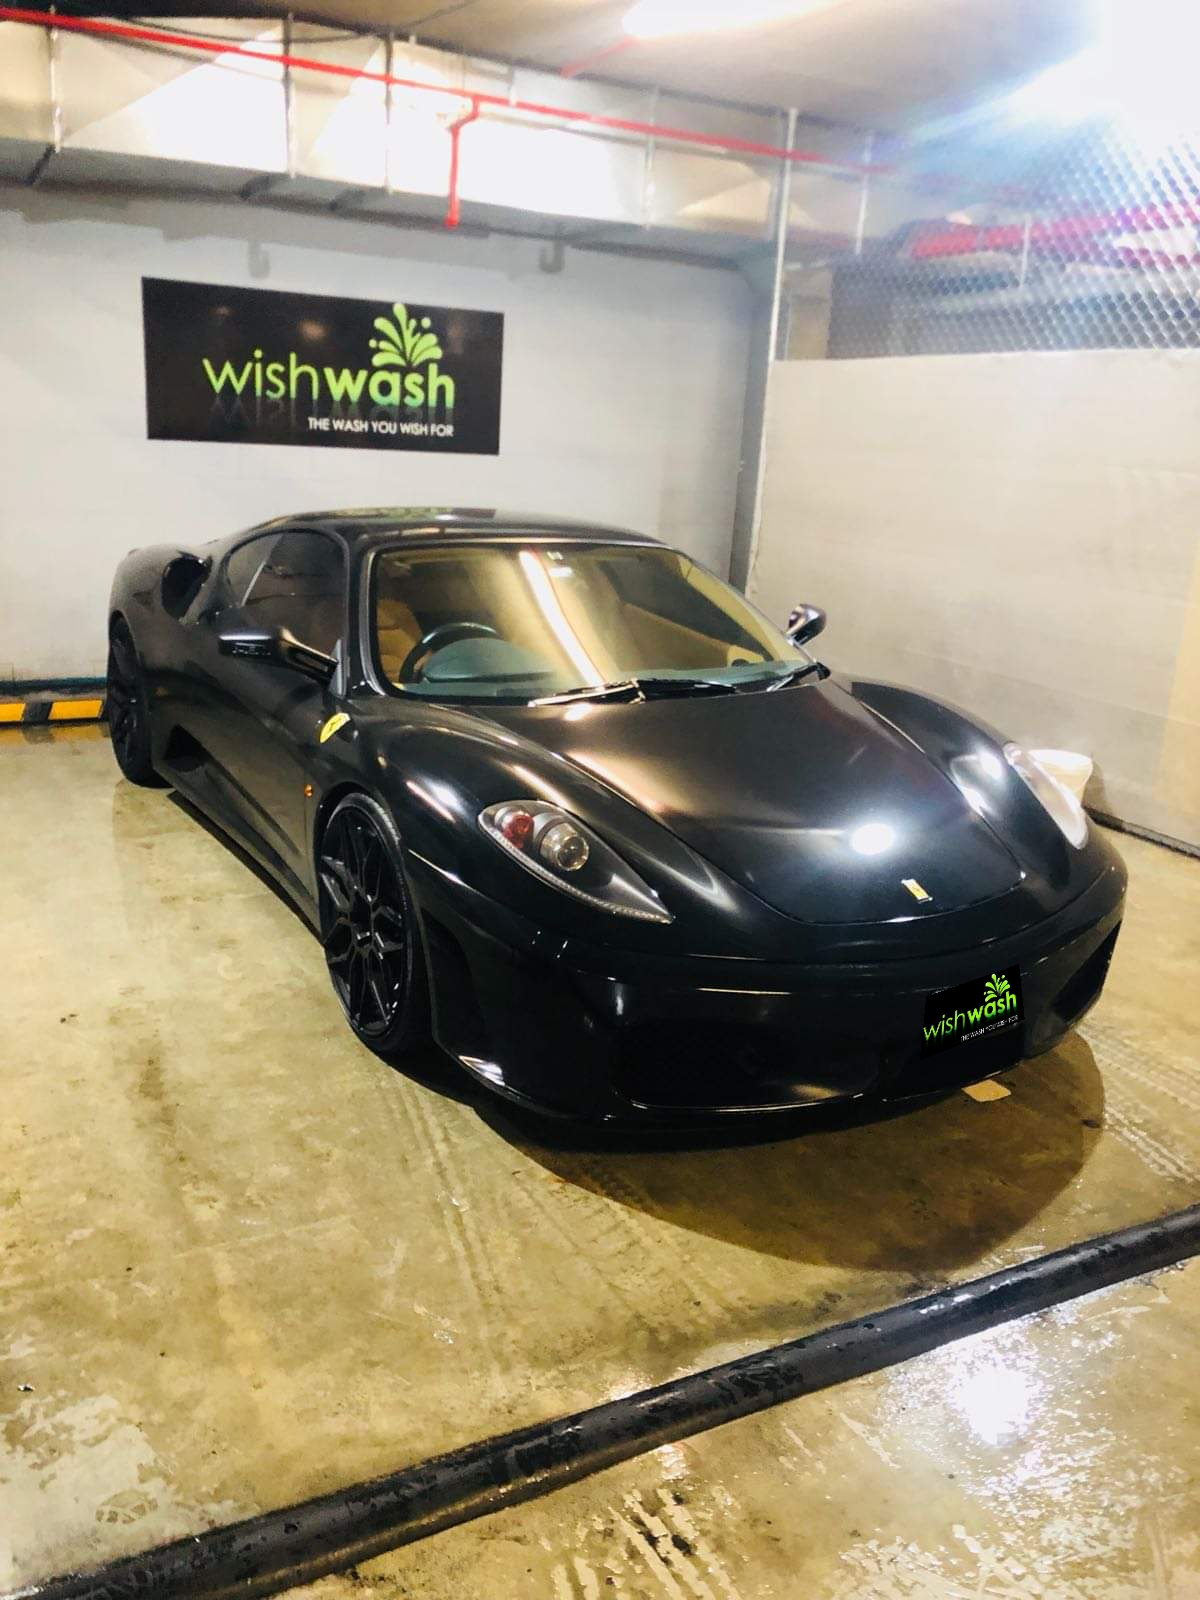 Wishwash Hand Carwash